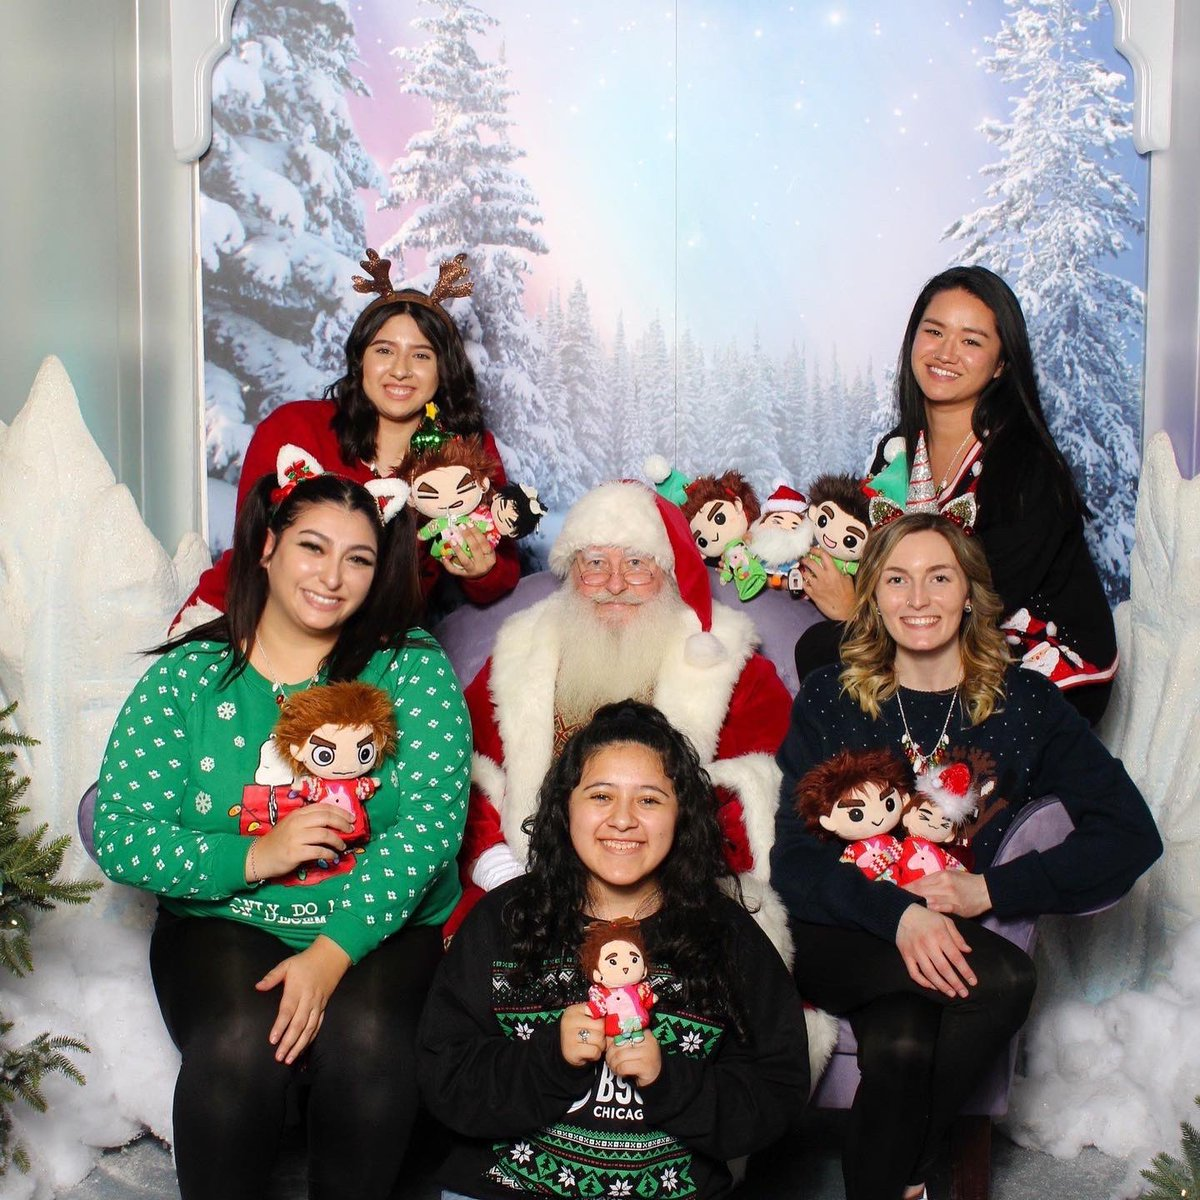 Yes we embarrassed ourselves today.   Happy holidays to everyone!!!!  <br>http://pic.twitter.com/Bnp63DEHx3